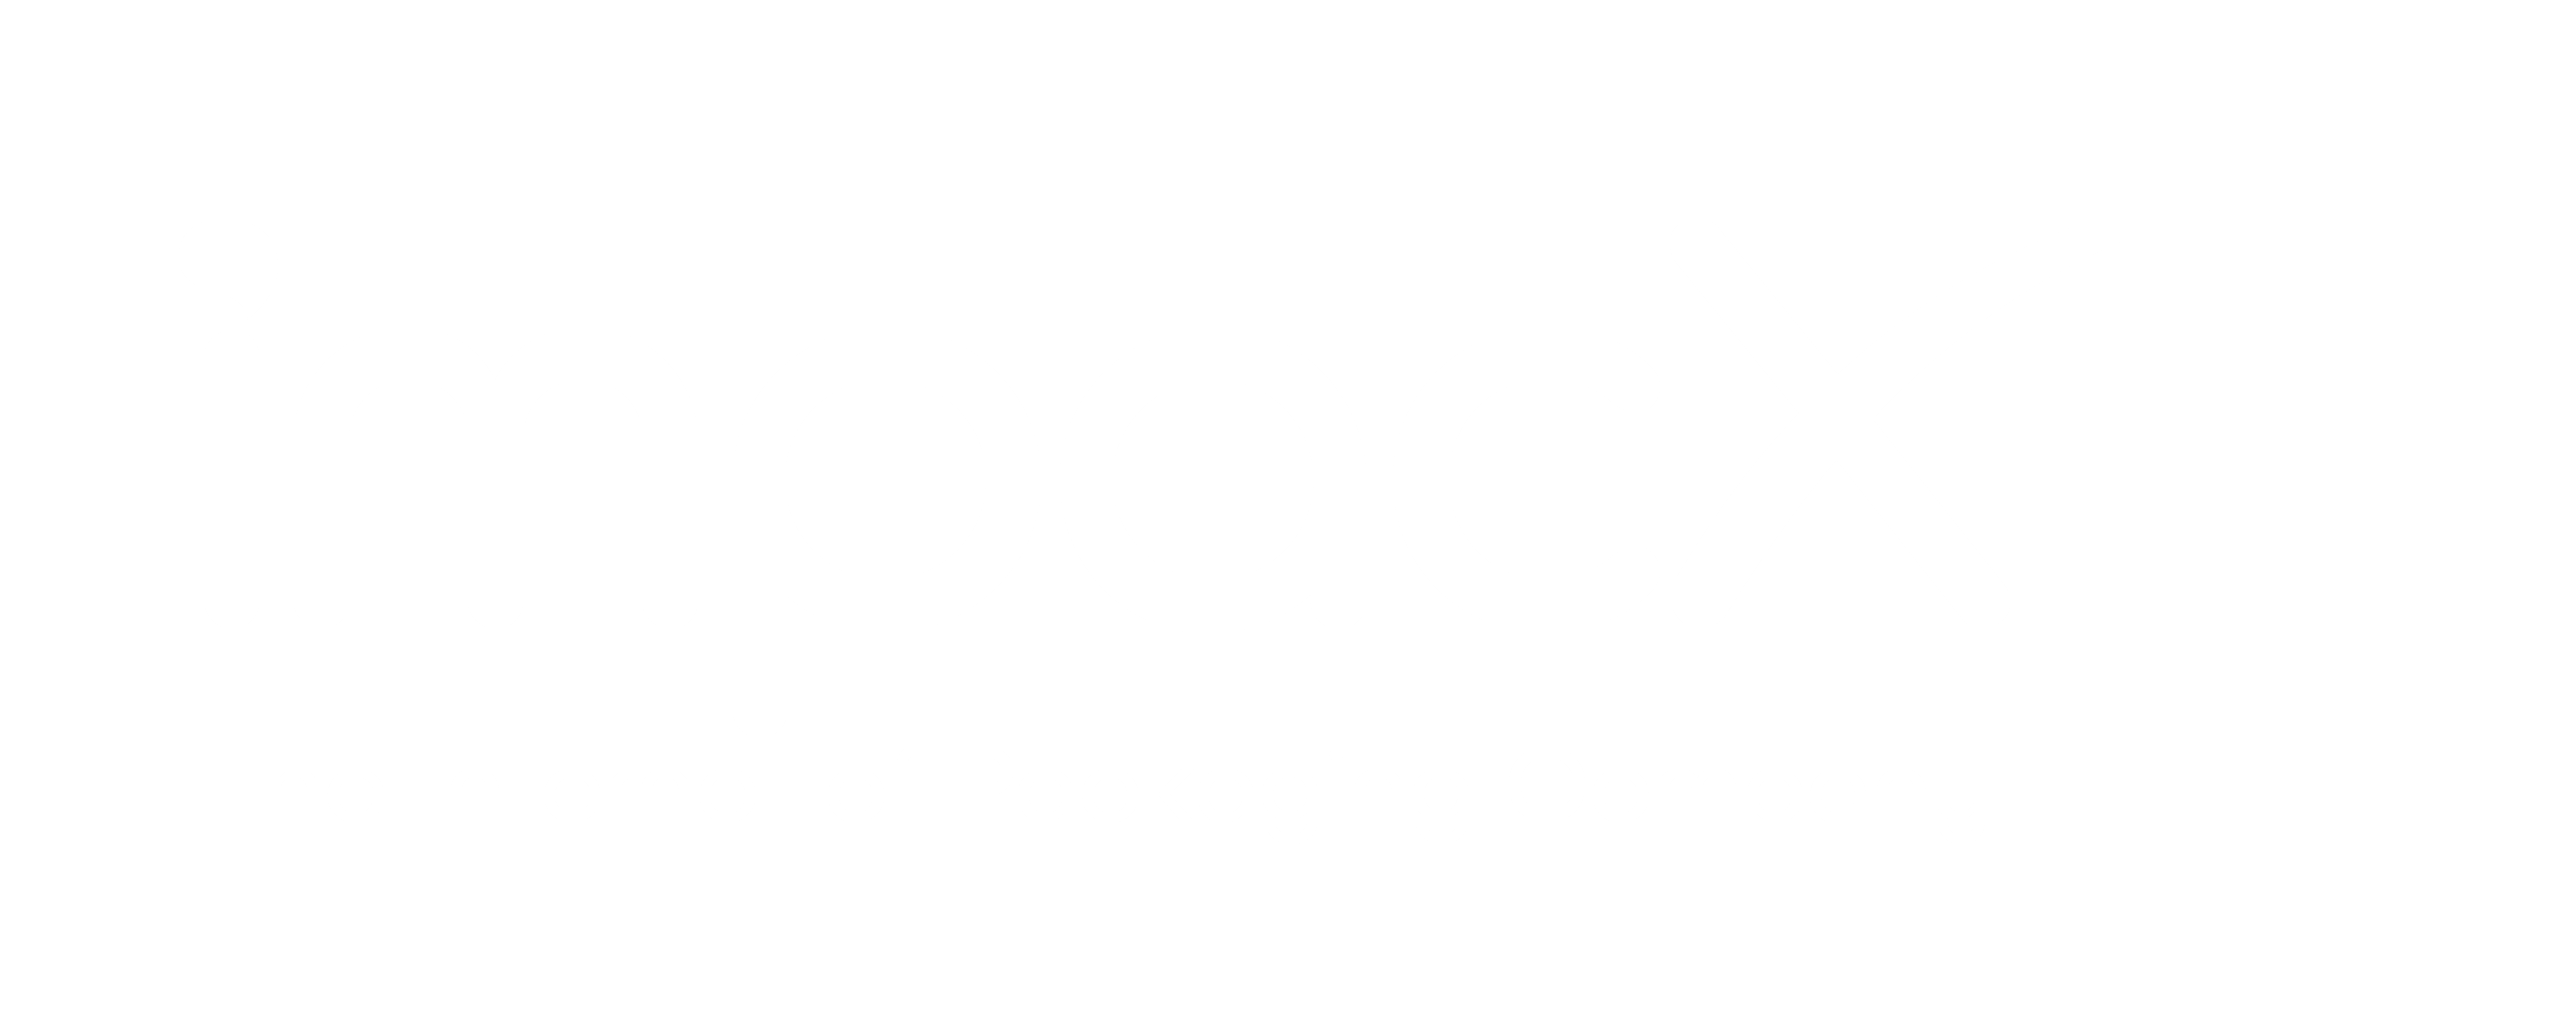 impacx logo white - internet of packaging company